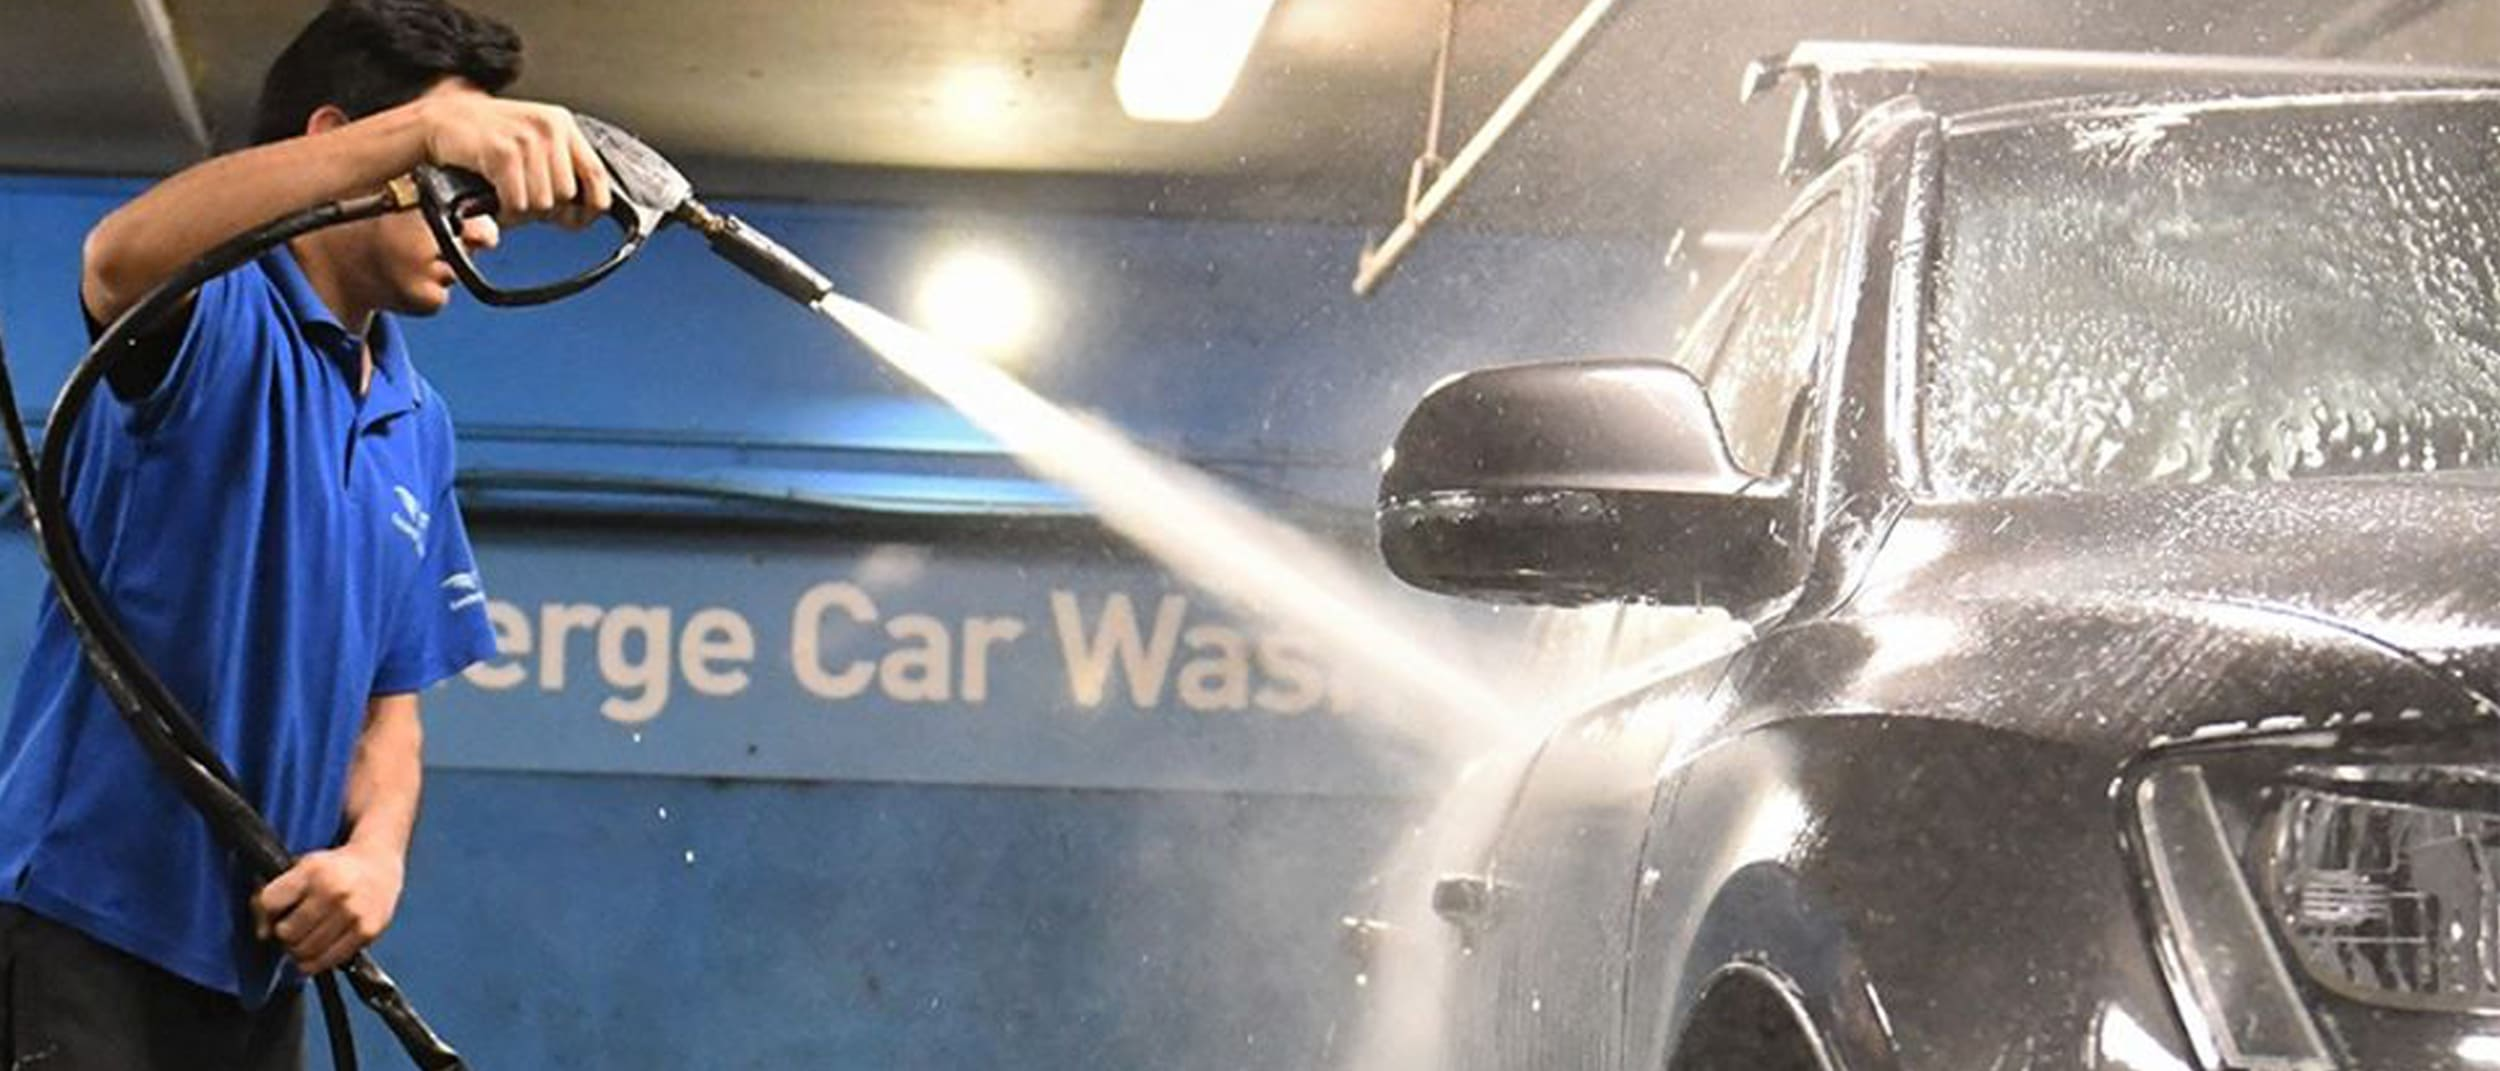 Exclusive: $10 off your next car wash*